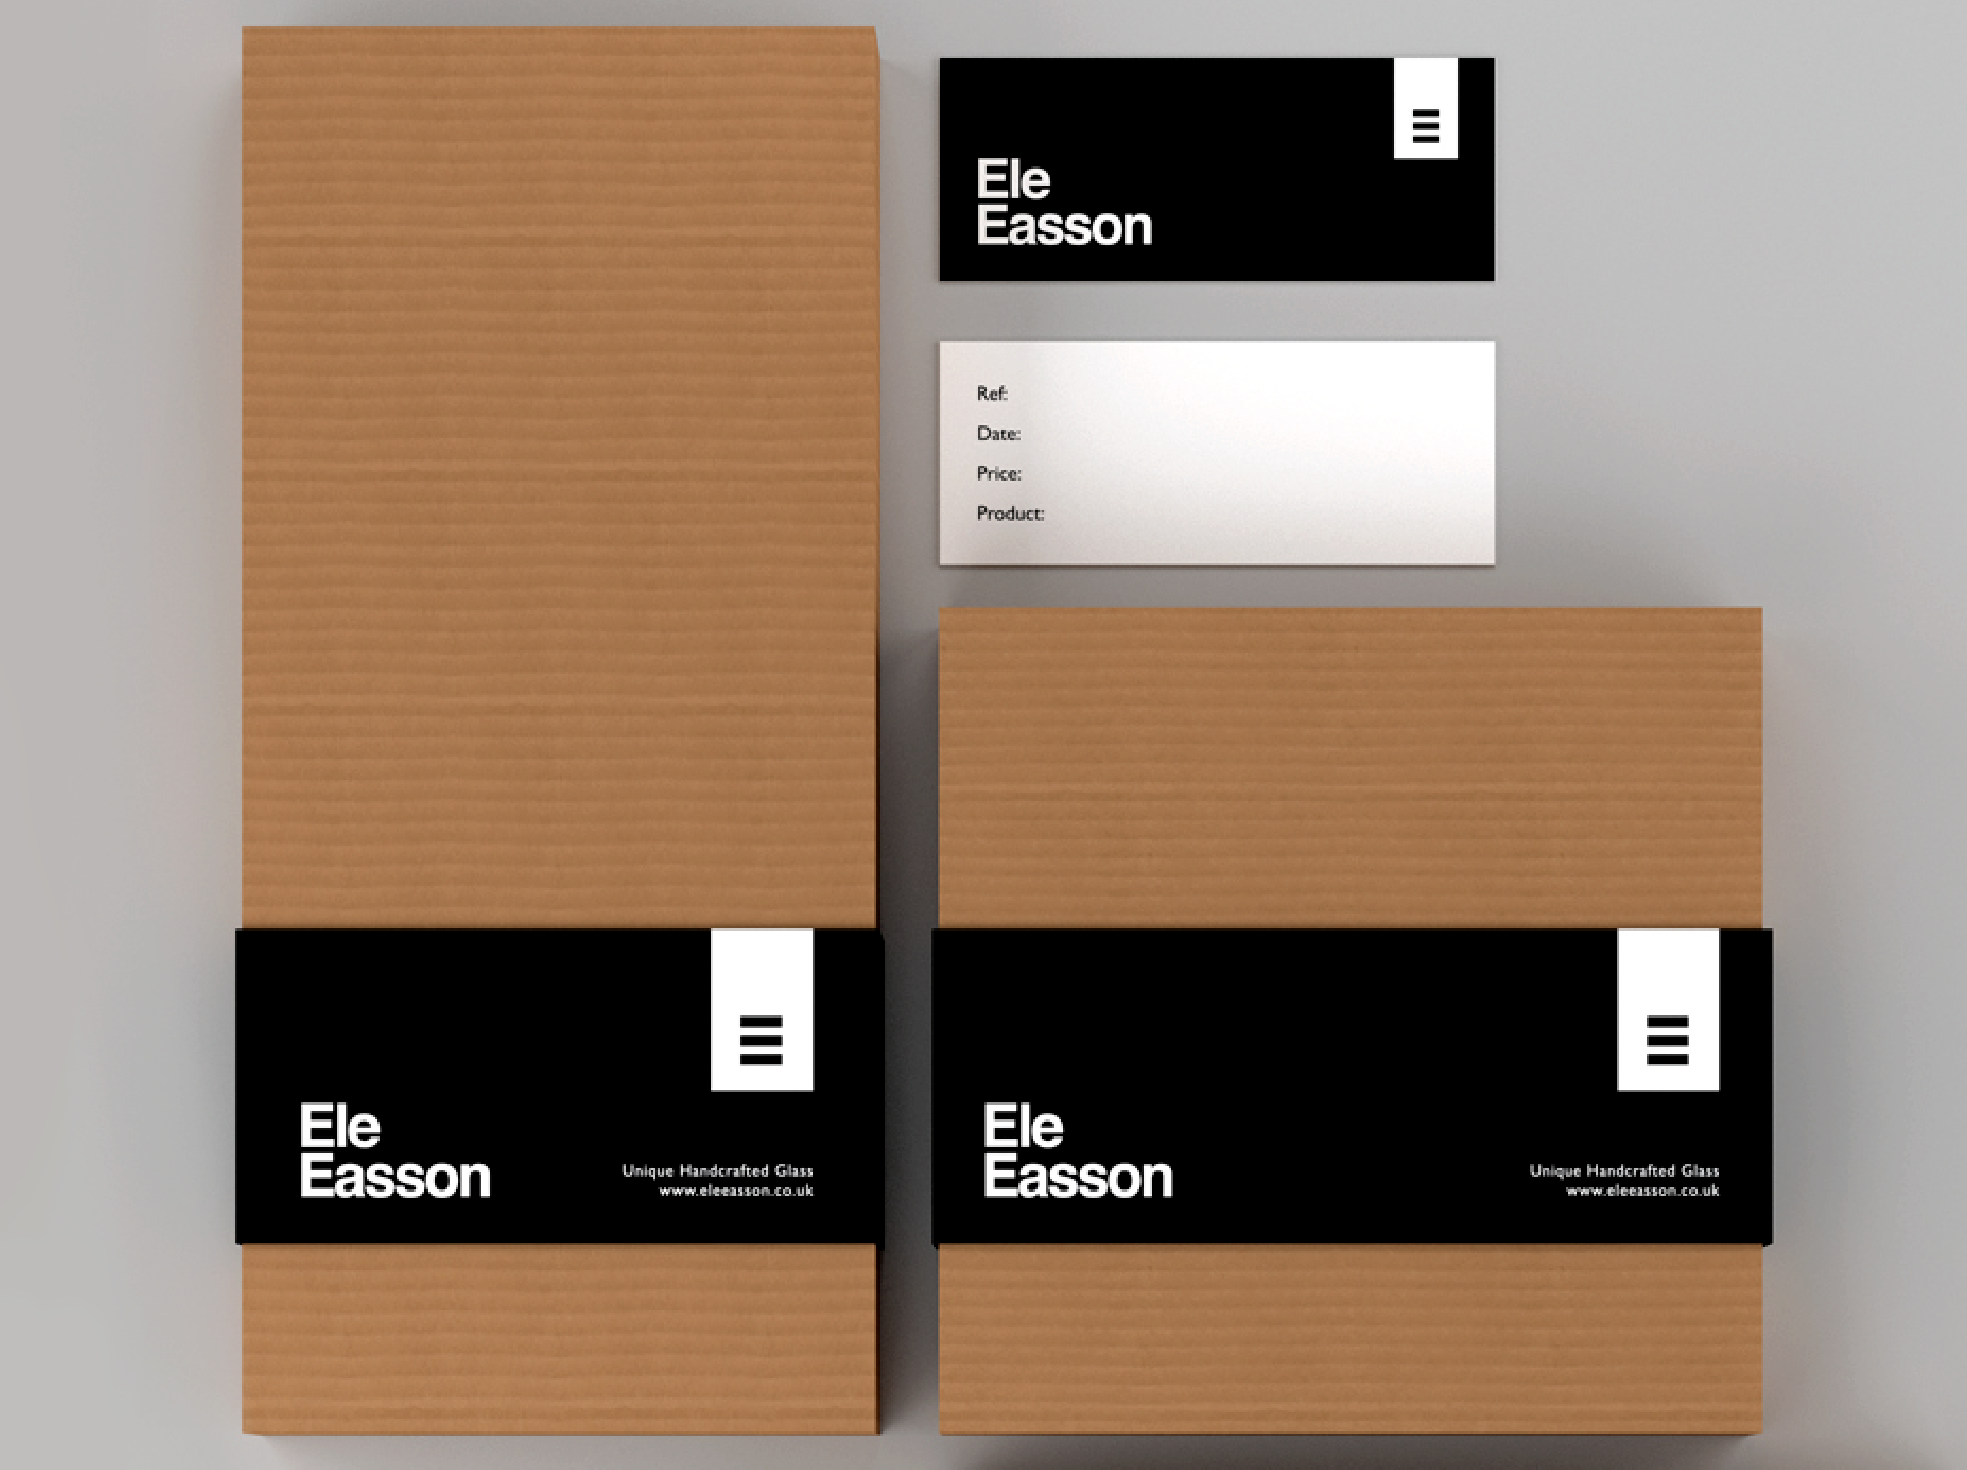 Ele Eason Packaging